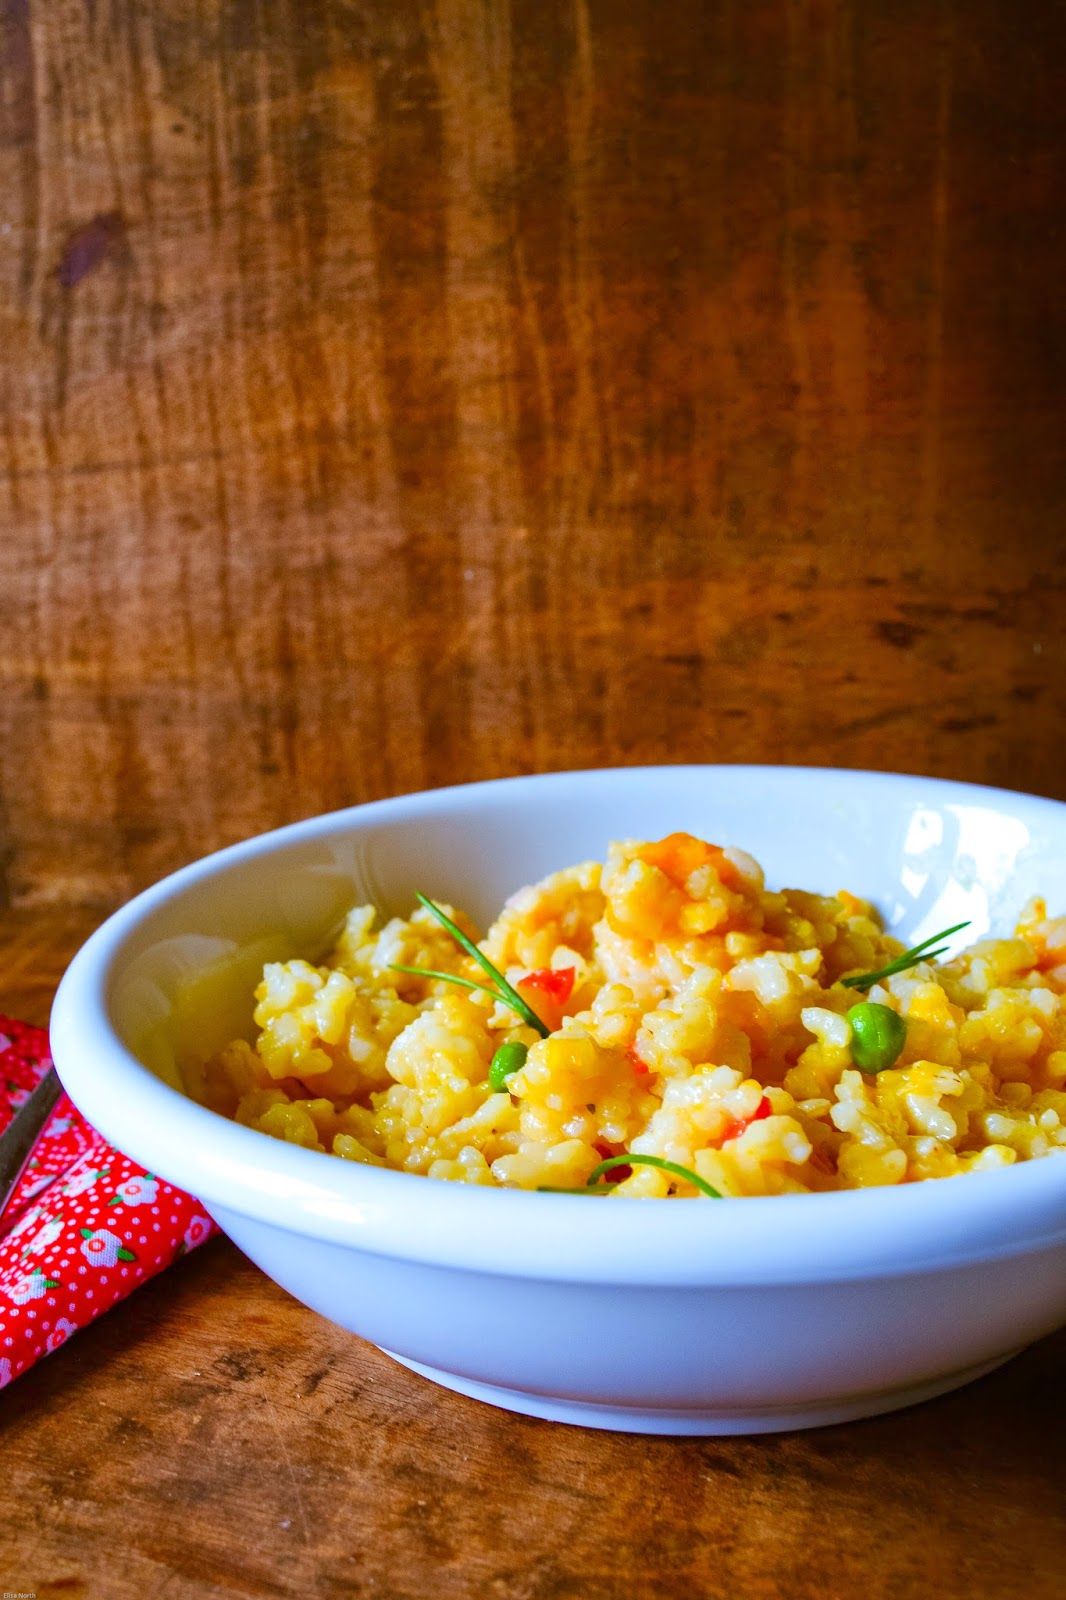 Creamy, Golden Butternut Squash Risotto Recipe from Lemon & Lime Thyme